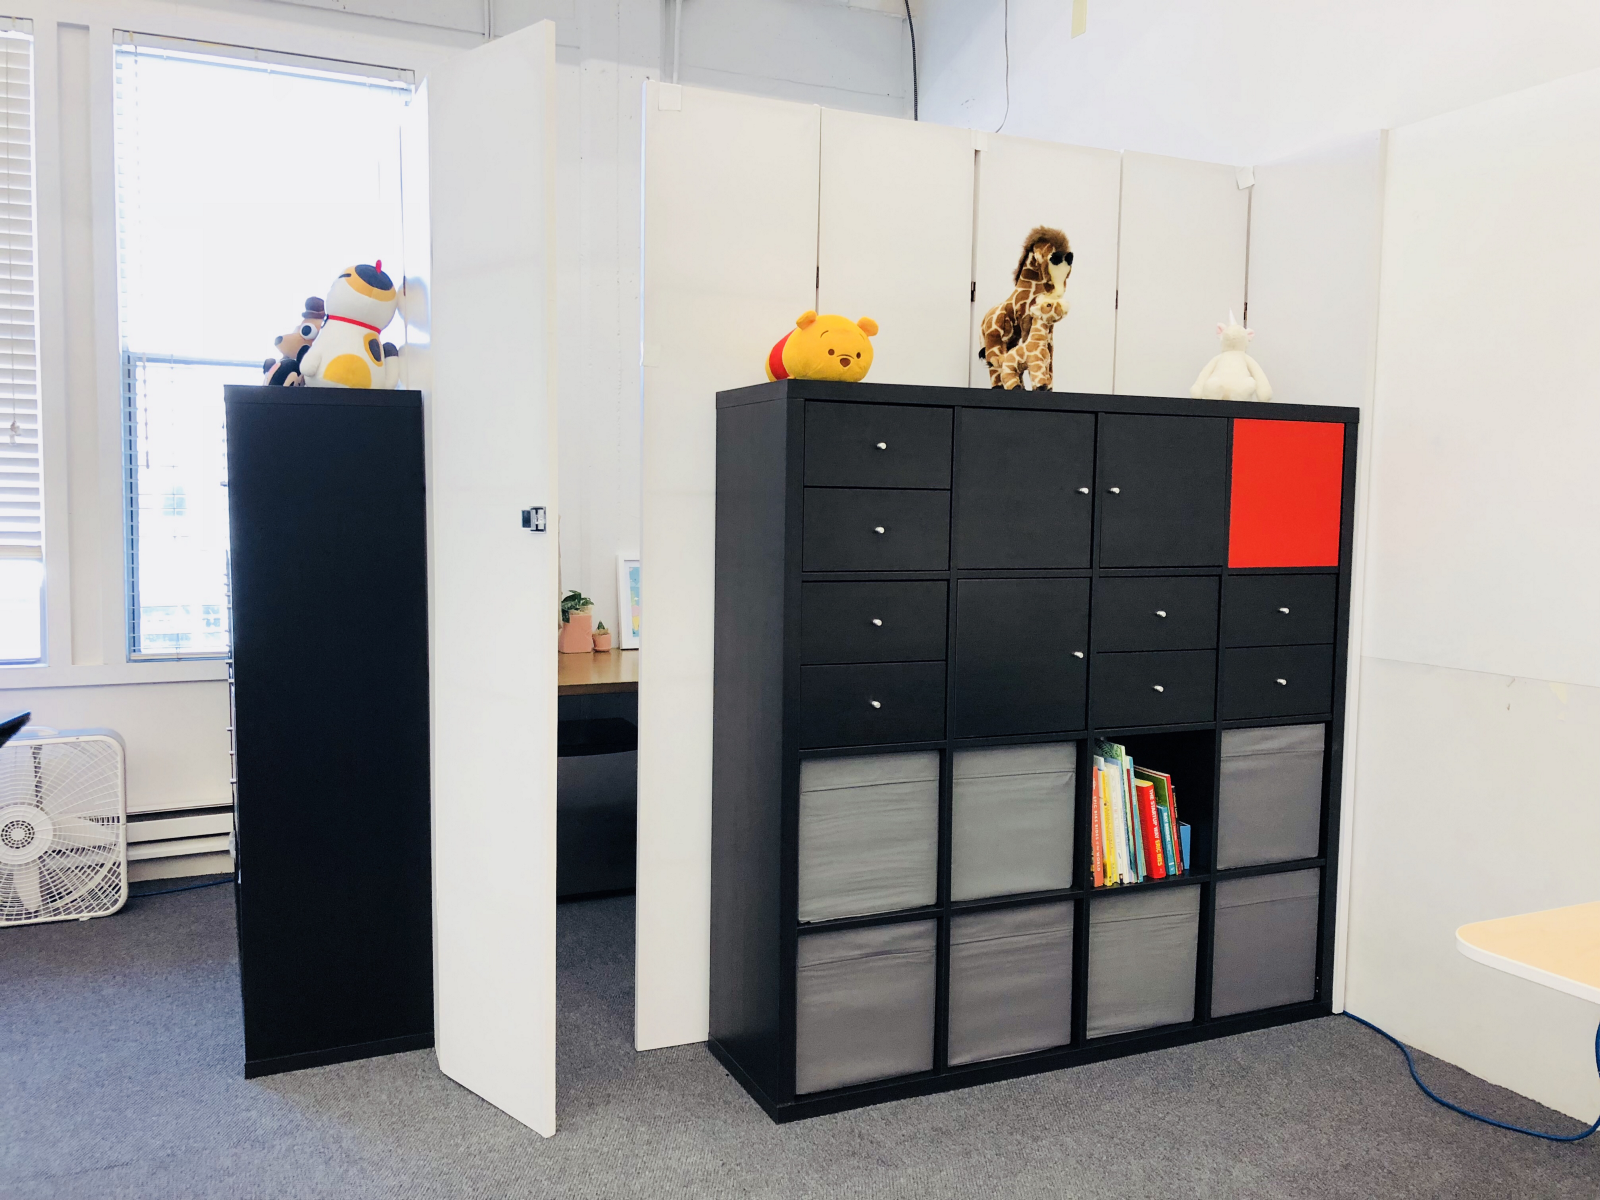 Building A Lactation Room For Your Office On A Budget